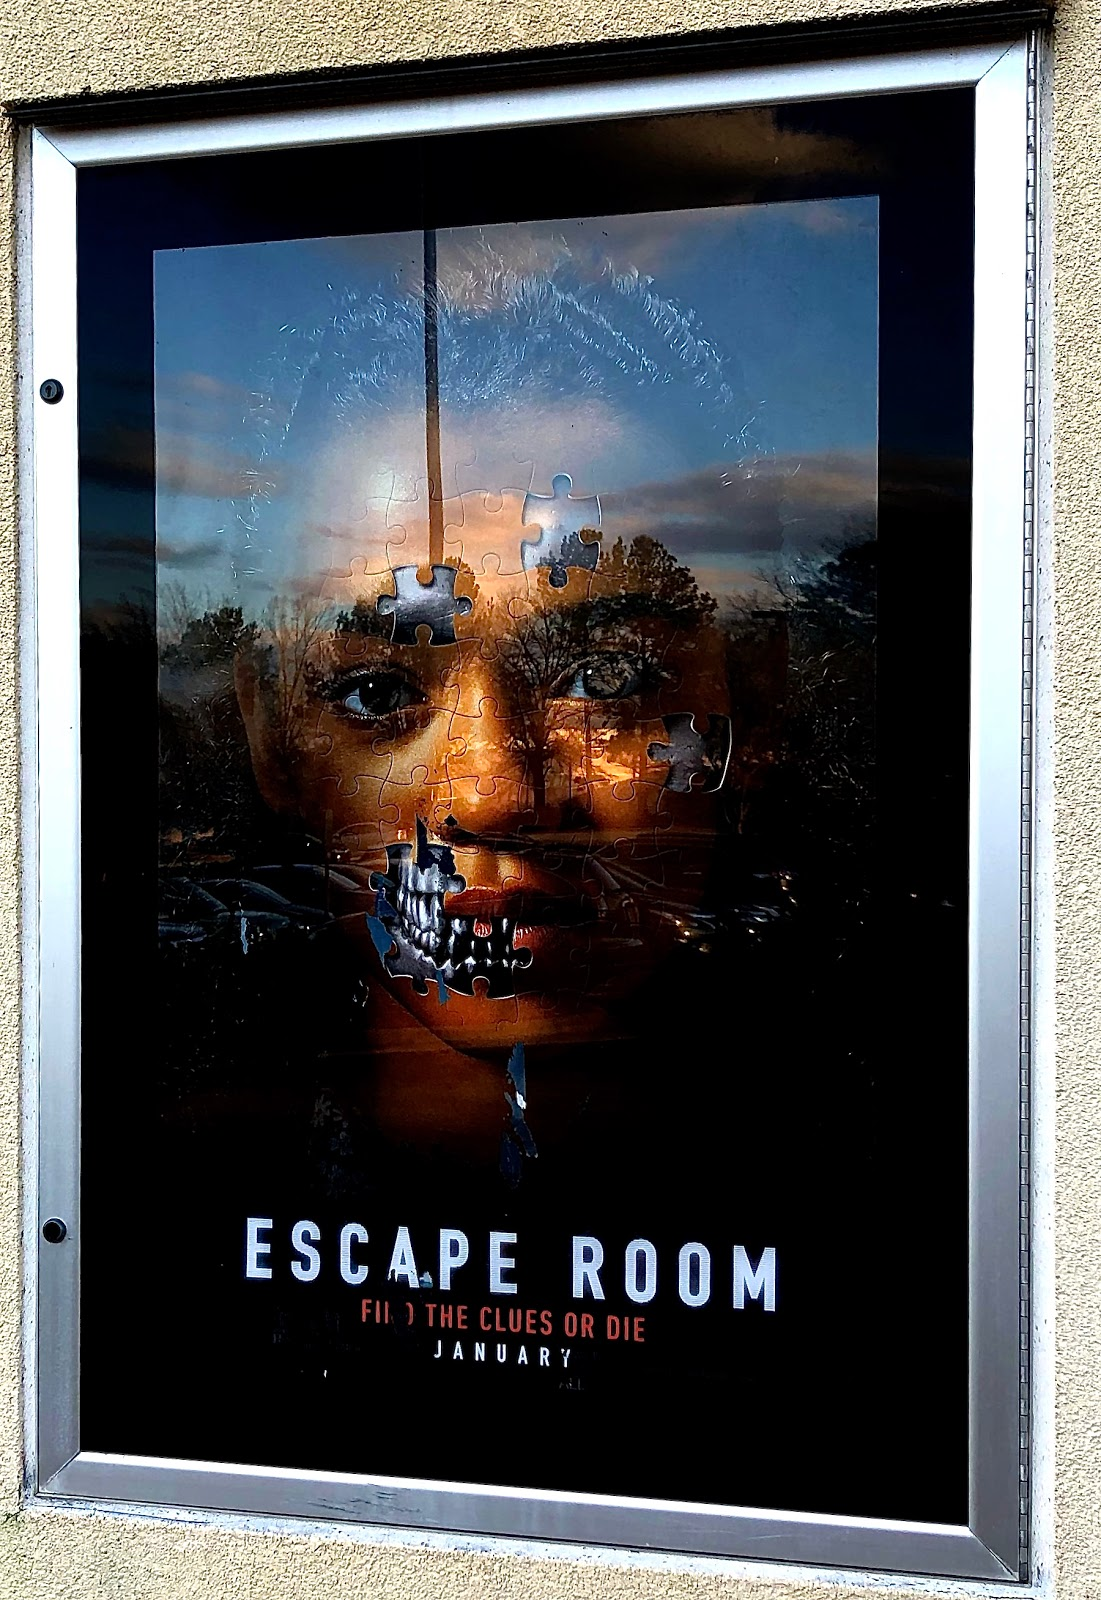 Blue Skies For Me Please Escape Room Movie Review January 2019